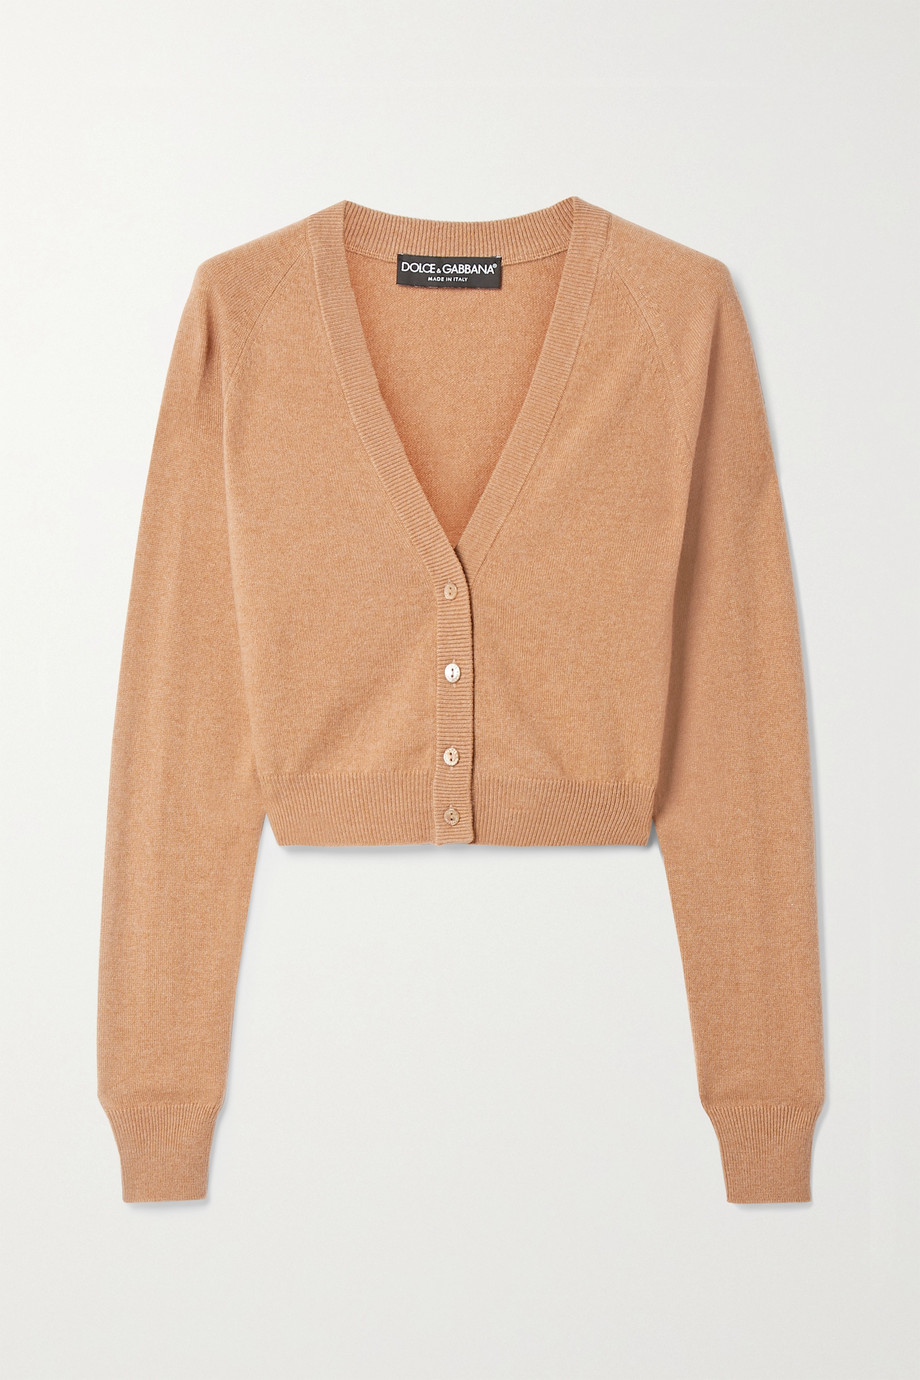 Dolce & Gabbana Cropped cashmere cardigan